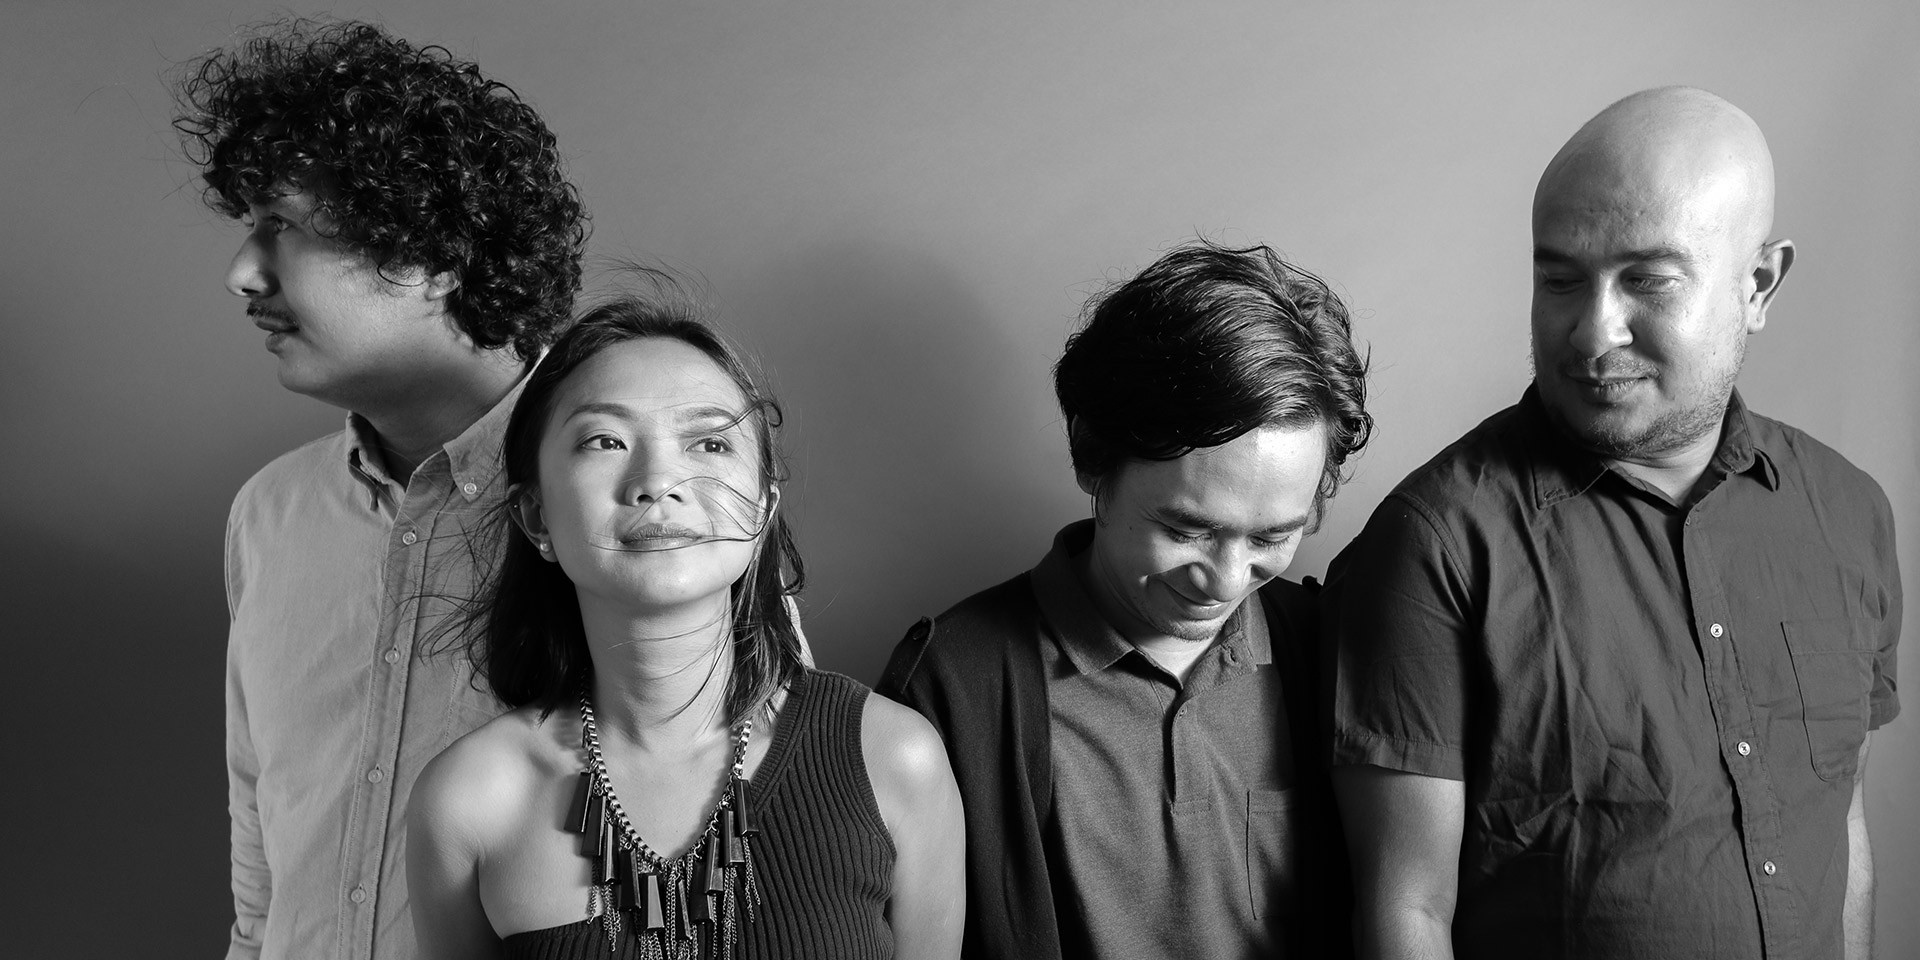 We Are Imaginary drop new single 'Dekada' from upcoming album – listen